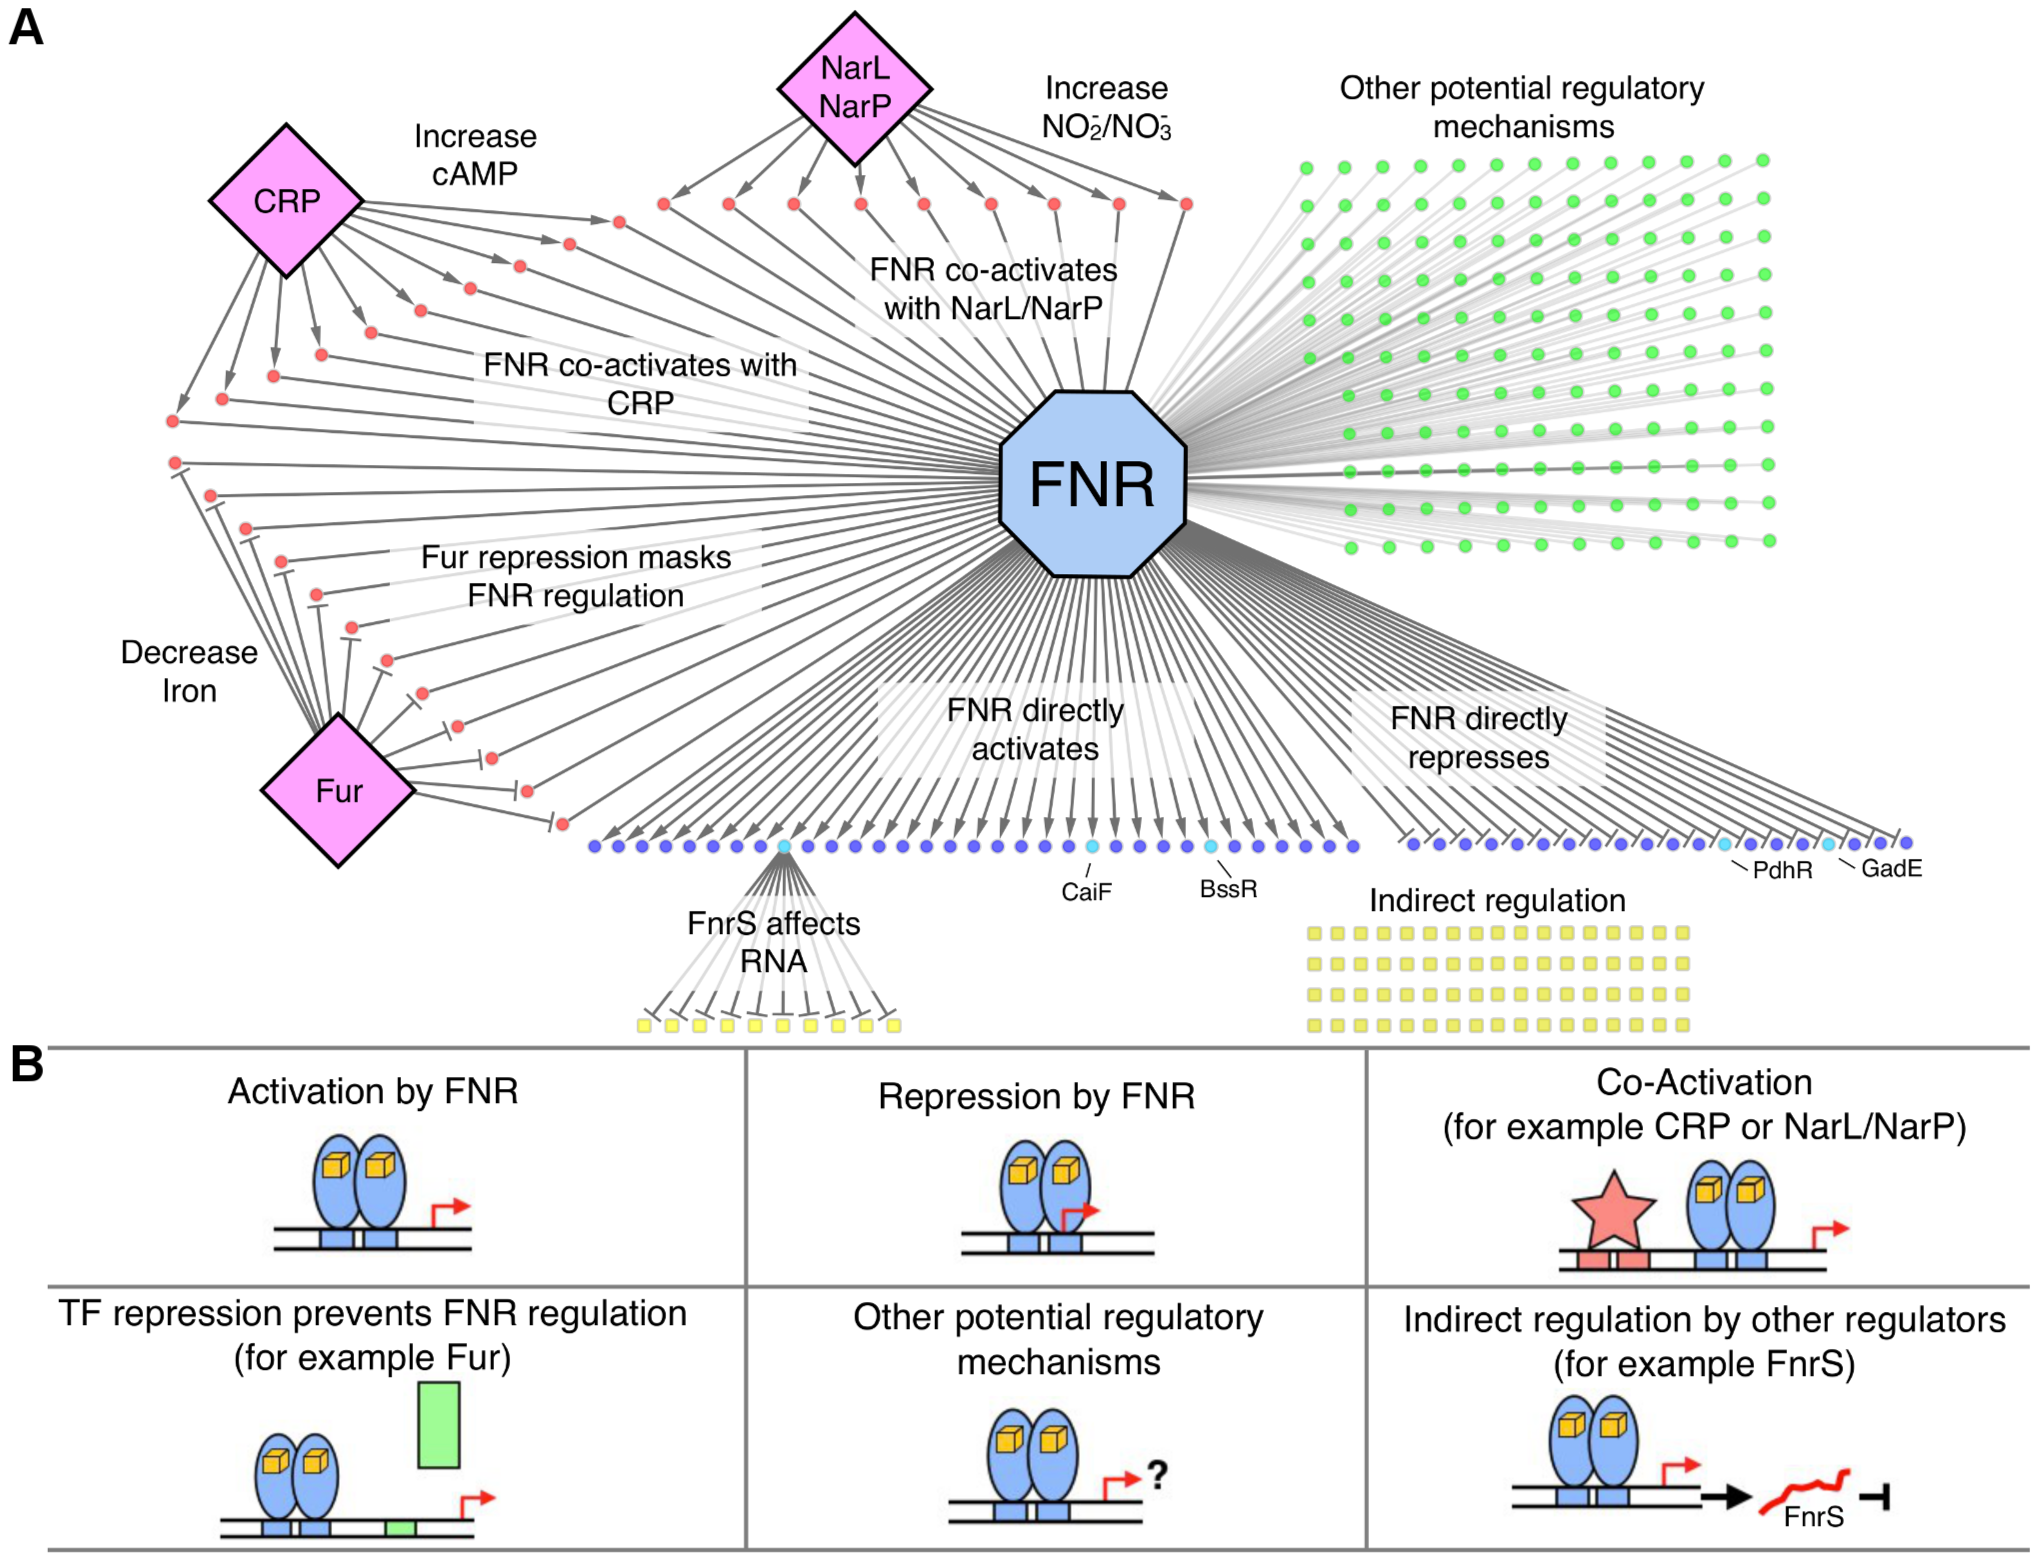 The FNR transcriptional network and categories of FNR regulation.